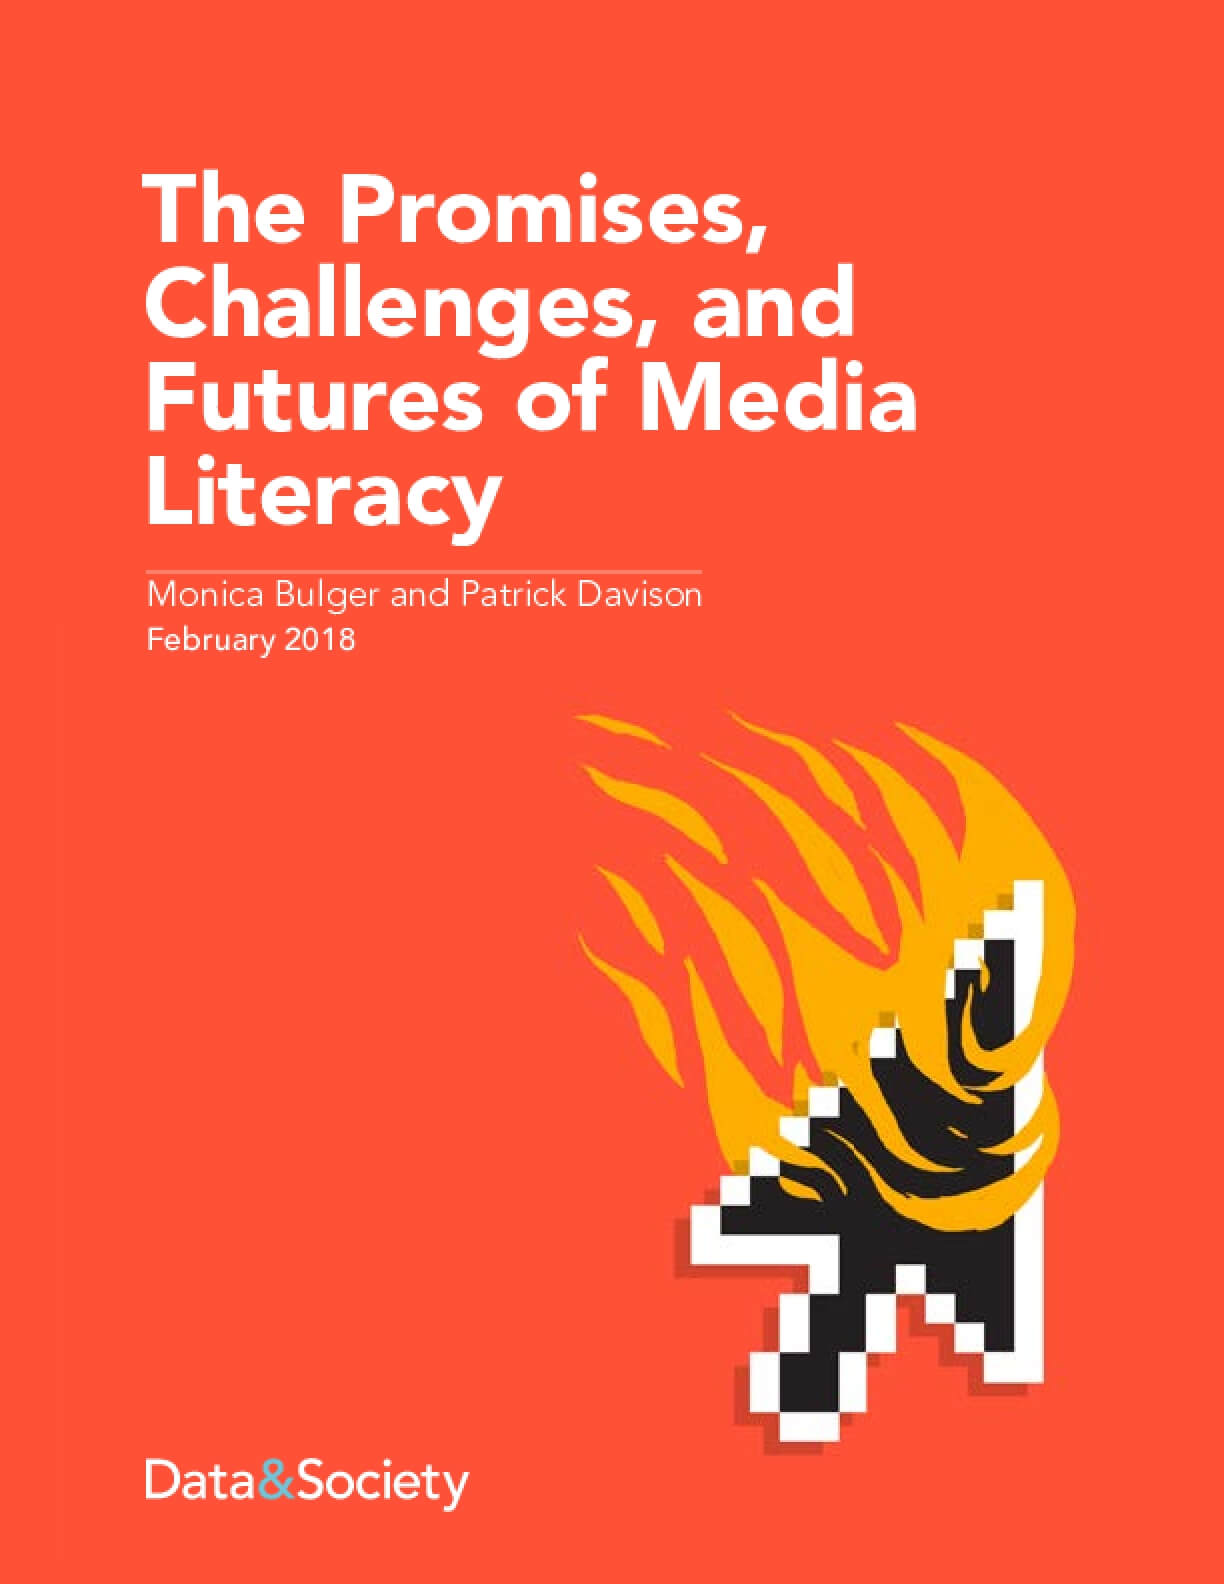 The Promises, Challenges, and Futures of Media Literacy